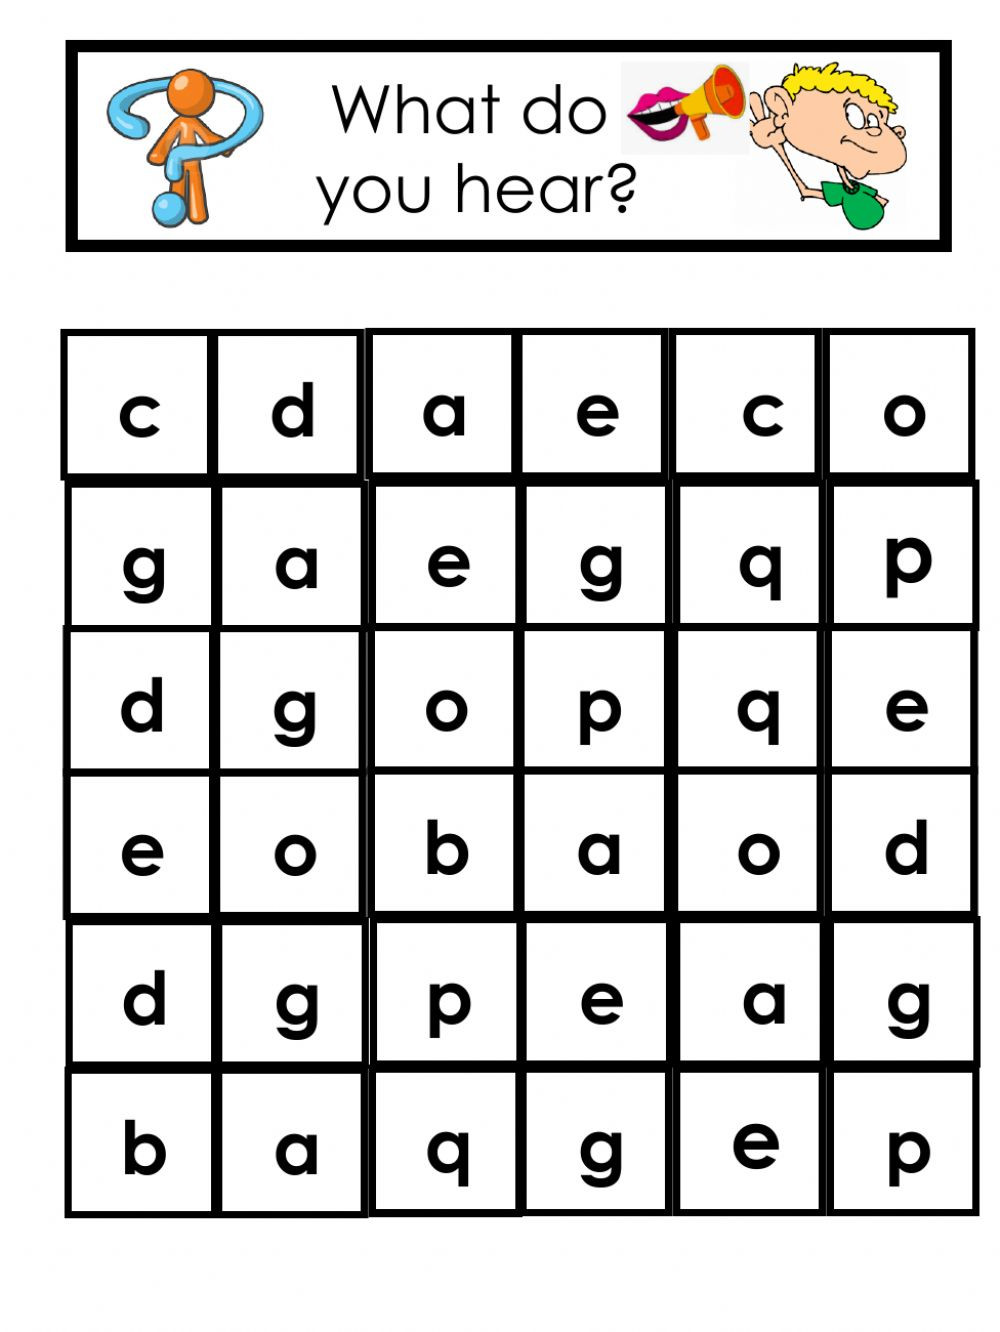 Letter sound Correspondence Worksheets Find the Letter E Worksheet